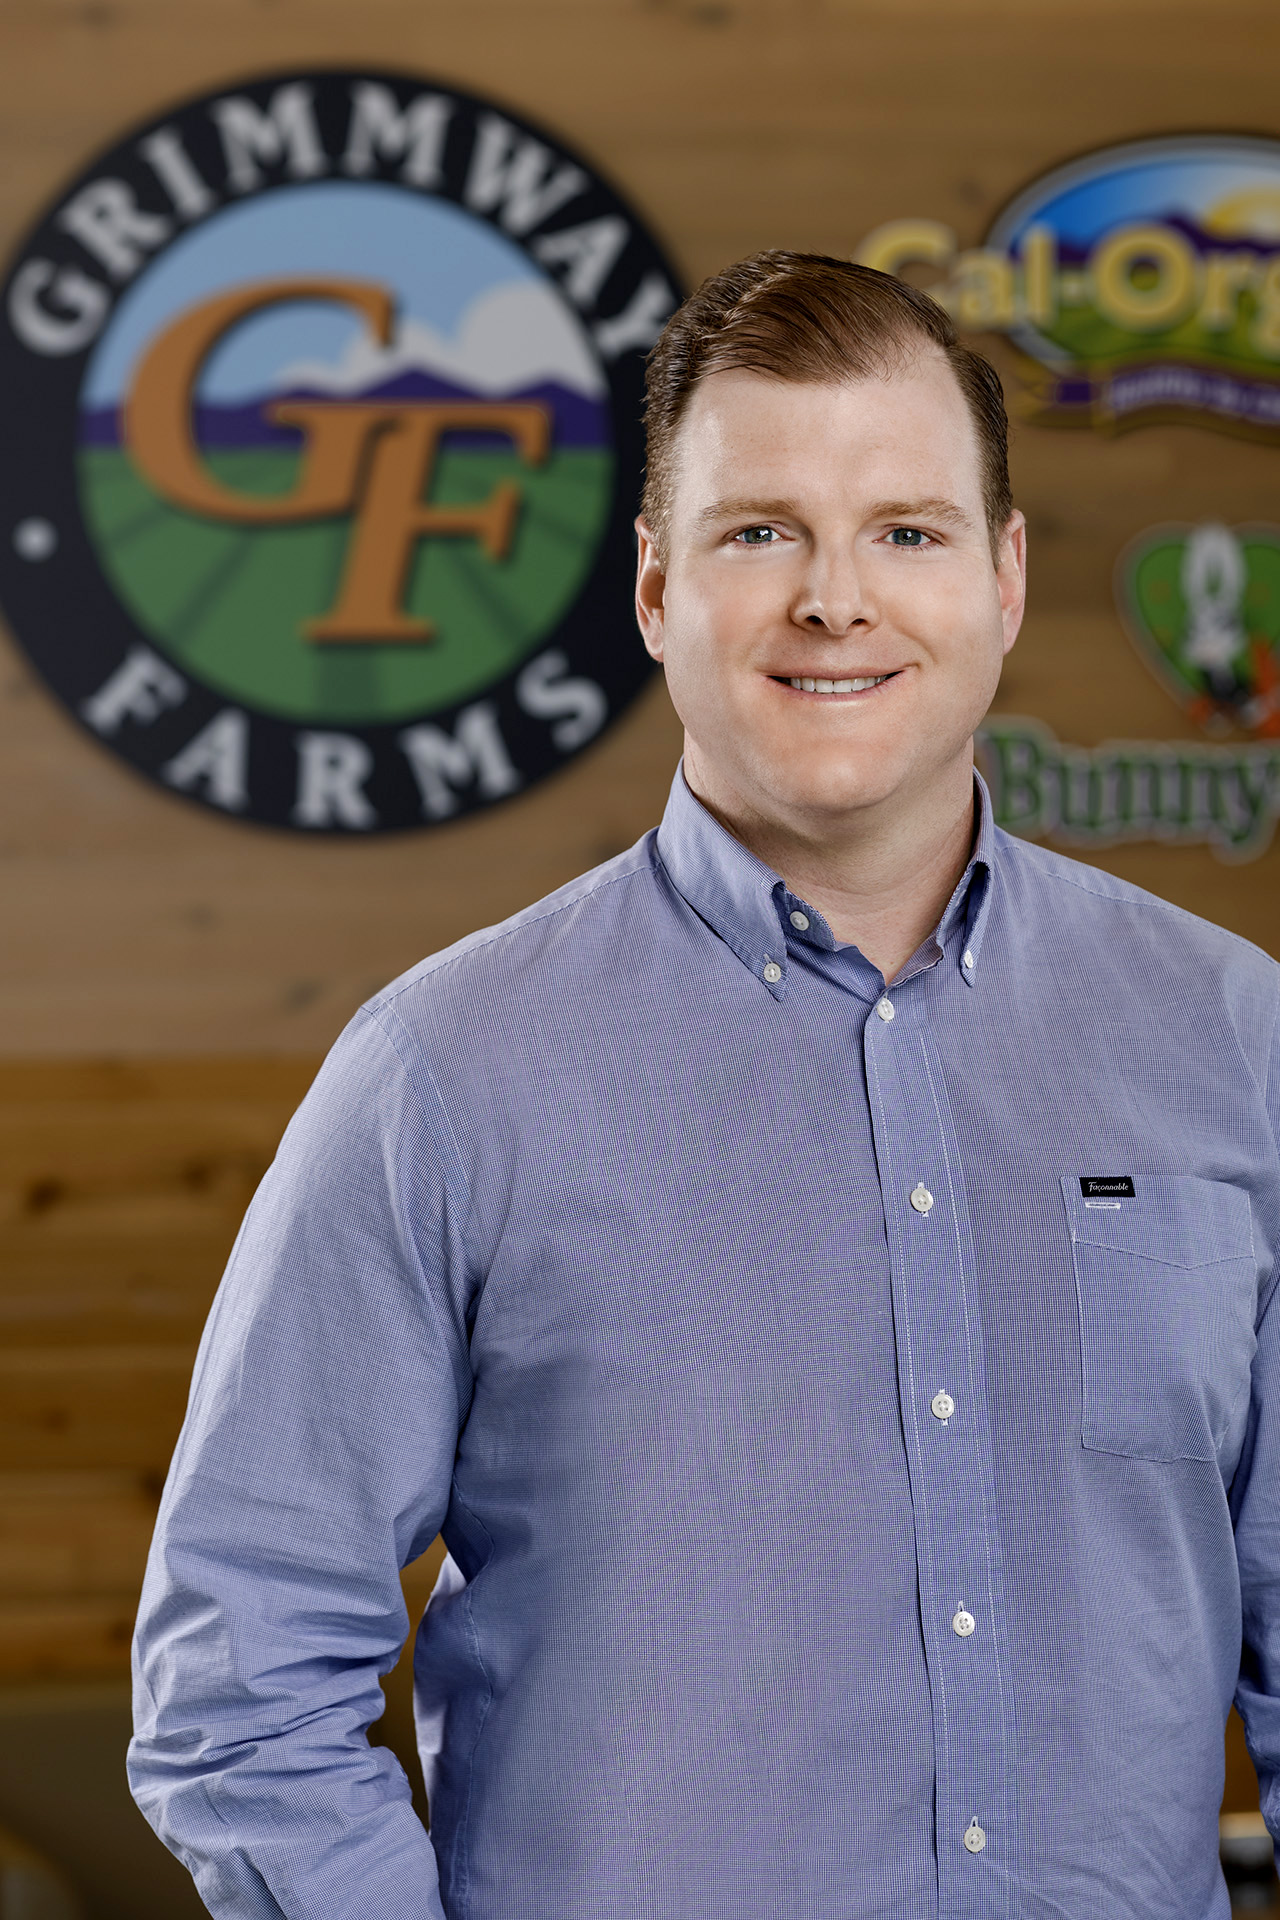 Brandon Grimm stands in front of farm logo